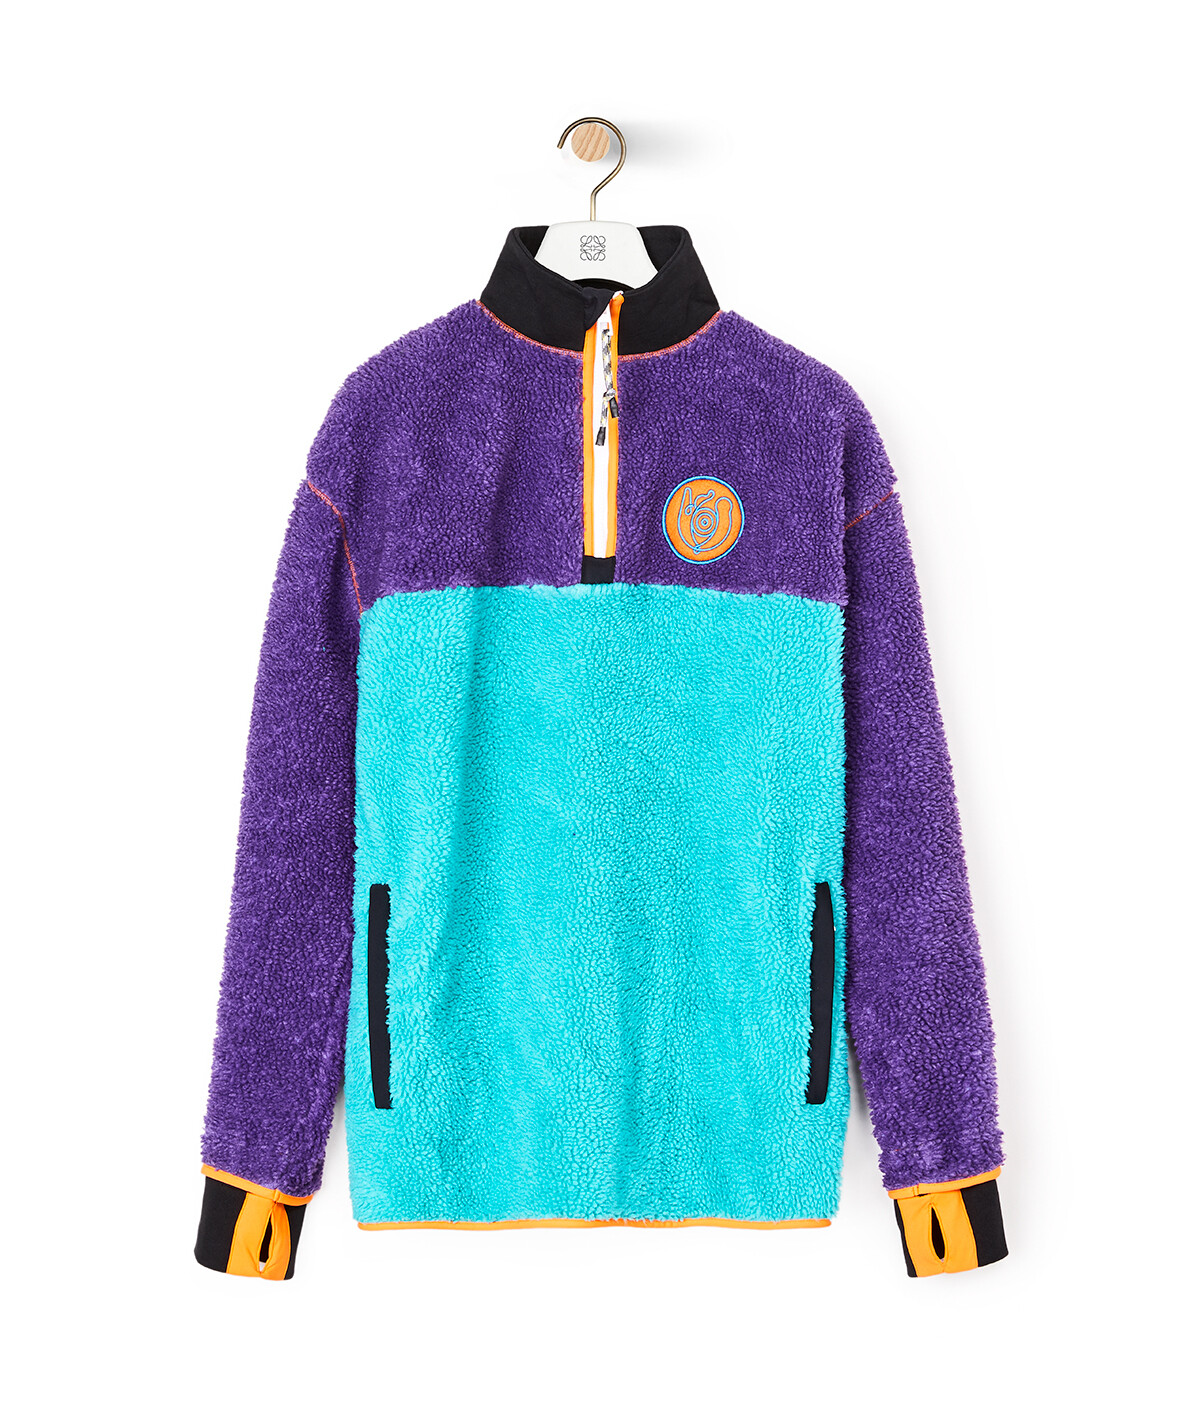 LOEWE Eln Fleece Zip Sweater 淺藍 front